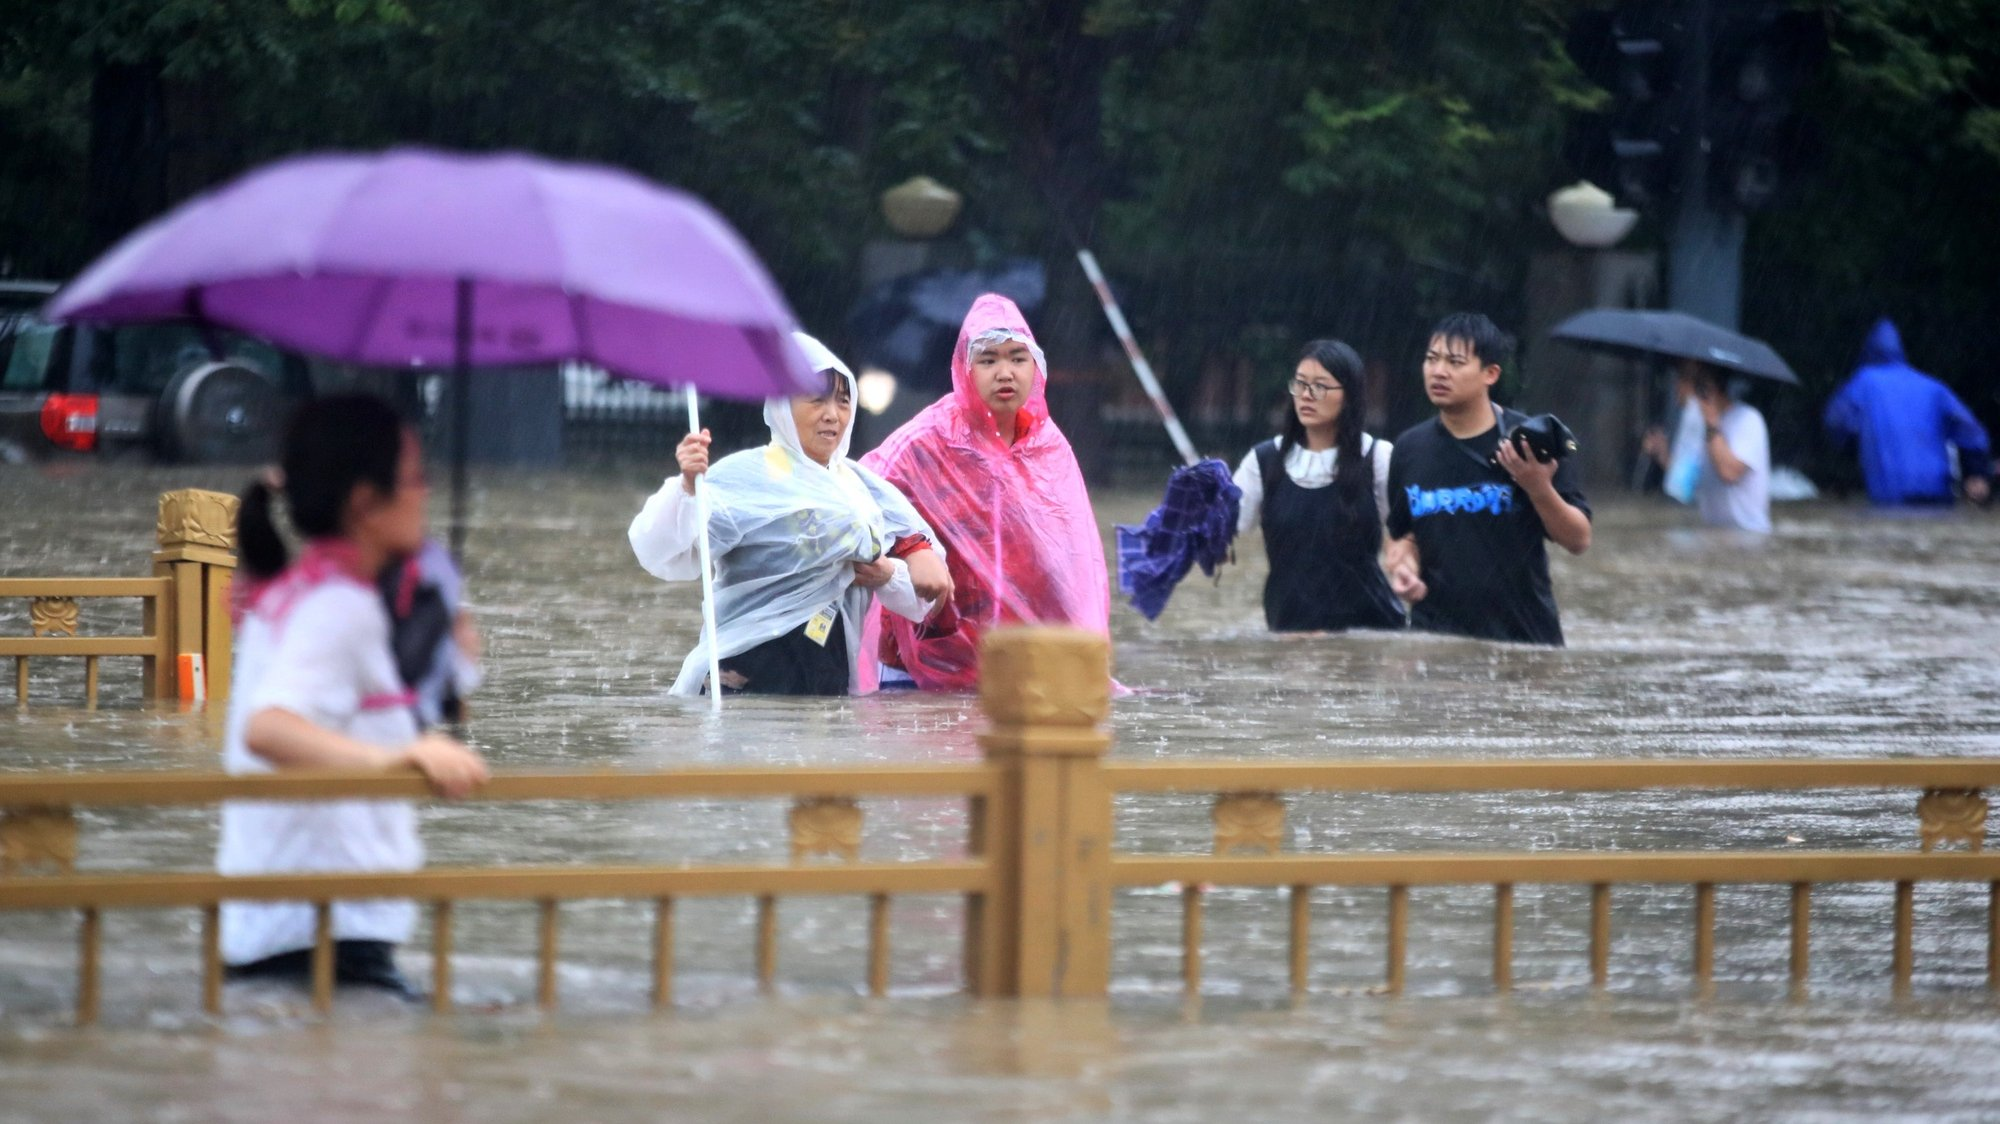 epa09356178 People walk in the flooded road after record downpours in Zhengzhou city in central China's Henan province Tuesday, July 20, 2021 (issued 21 July 2021). Heavy floods in Central China killed 12 in Zhengzhou city due to the rainfall yesterday, 20 July 2021, according to official Chinese media. Over 144,660 people have been affected by heavy rains in Henan Province since July 16, and over 10,000 had to be relocated, the provincial flood control and drought relief headquarters said Tuesday.  EPA/FEATURECHINA CHINA OUT